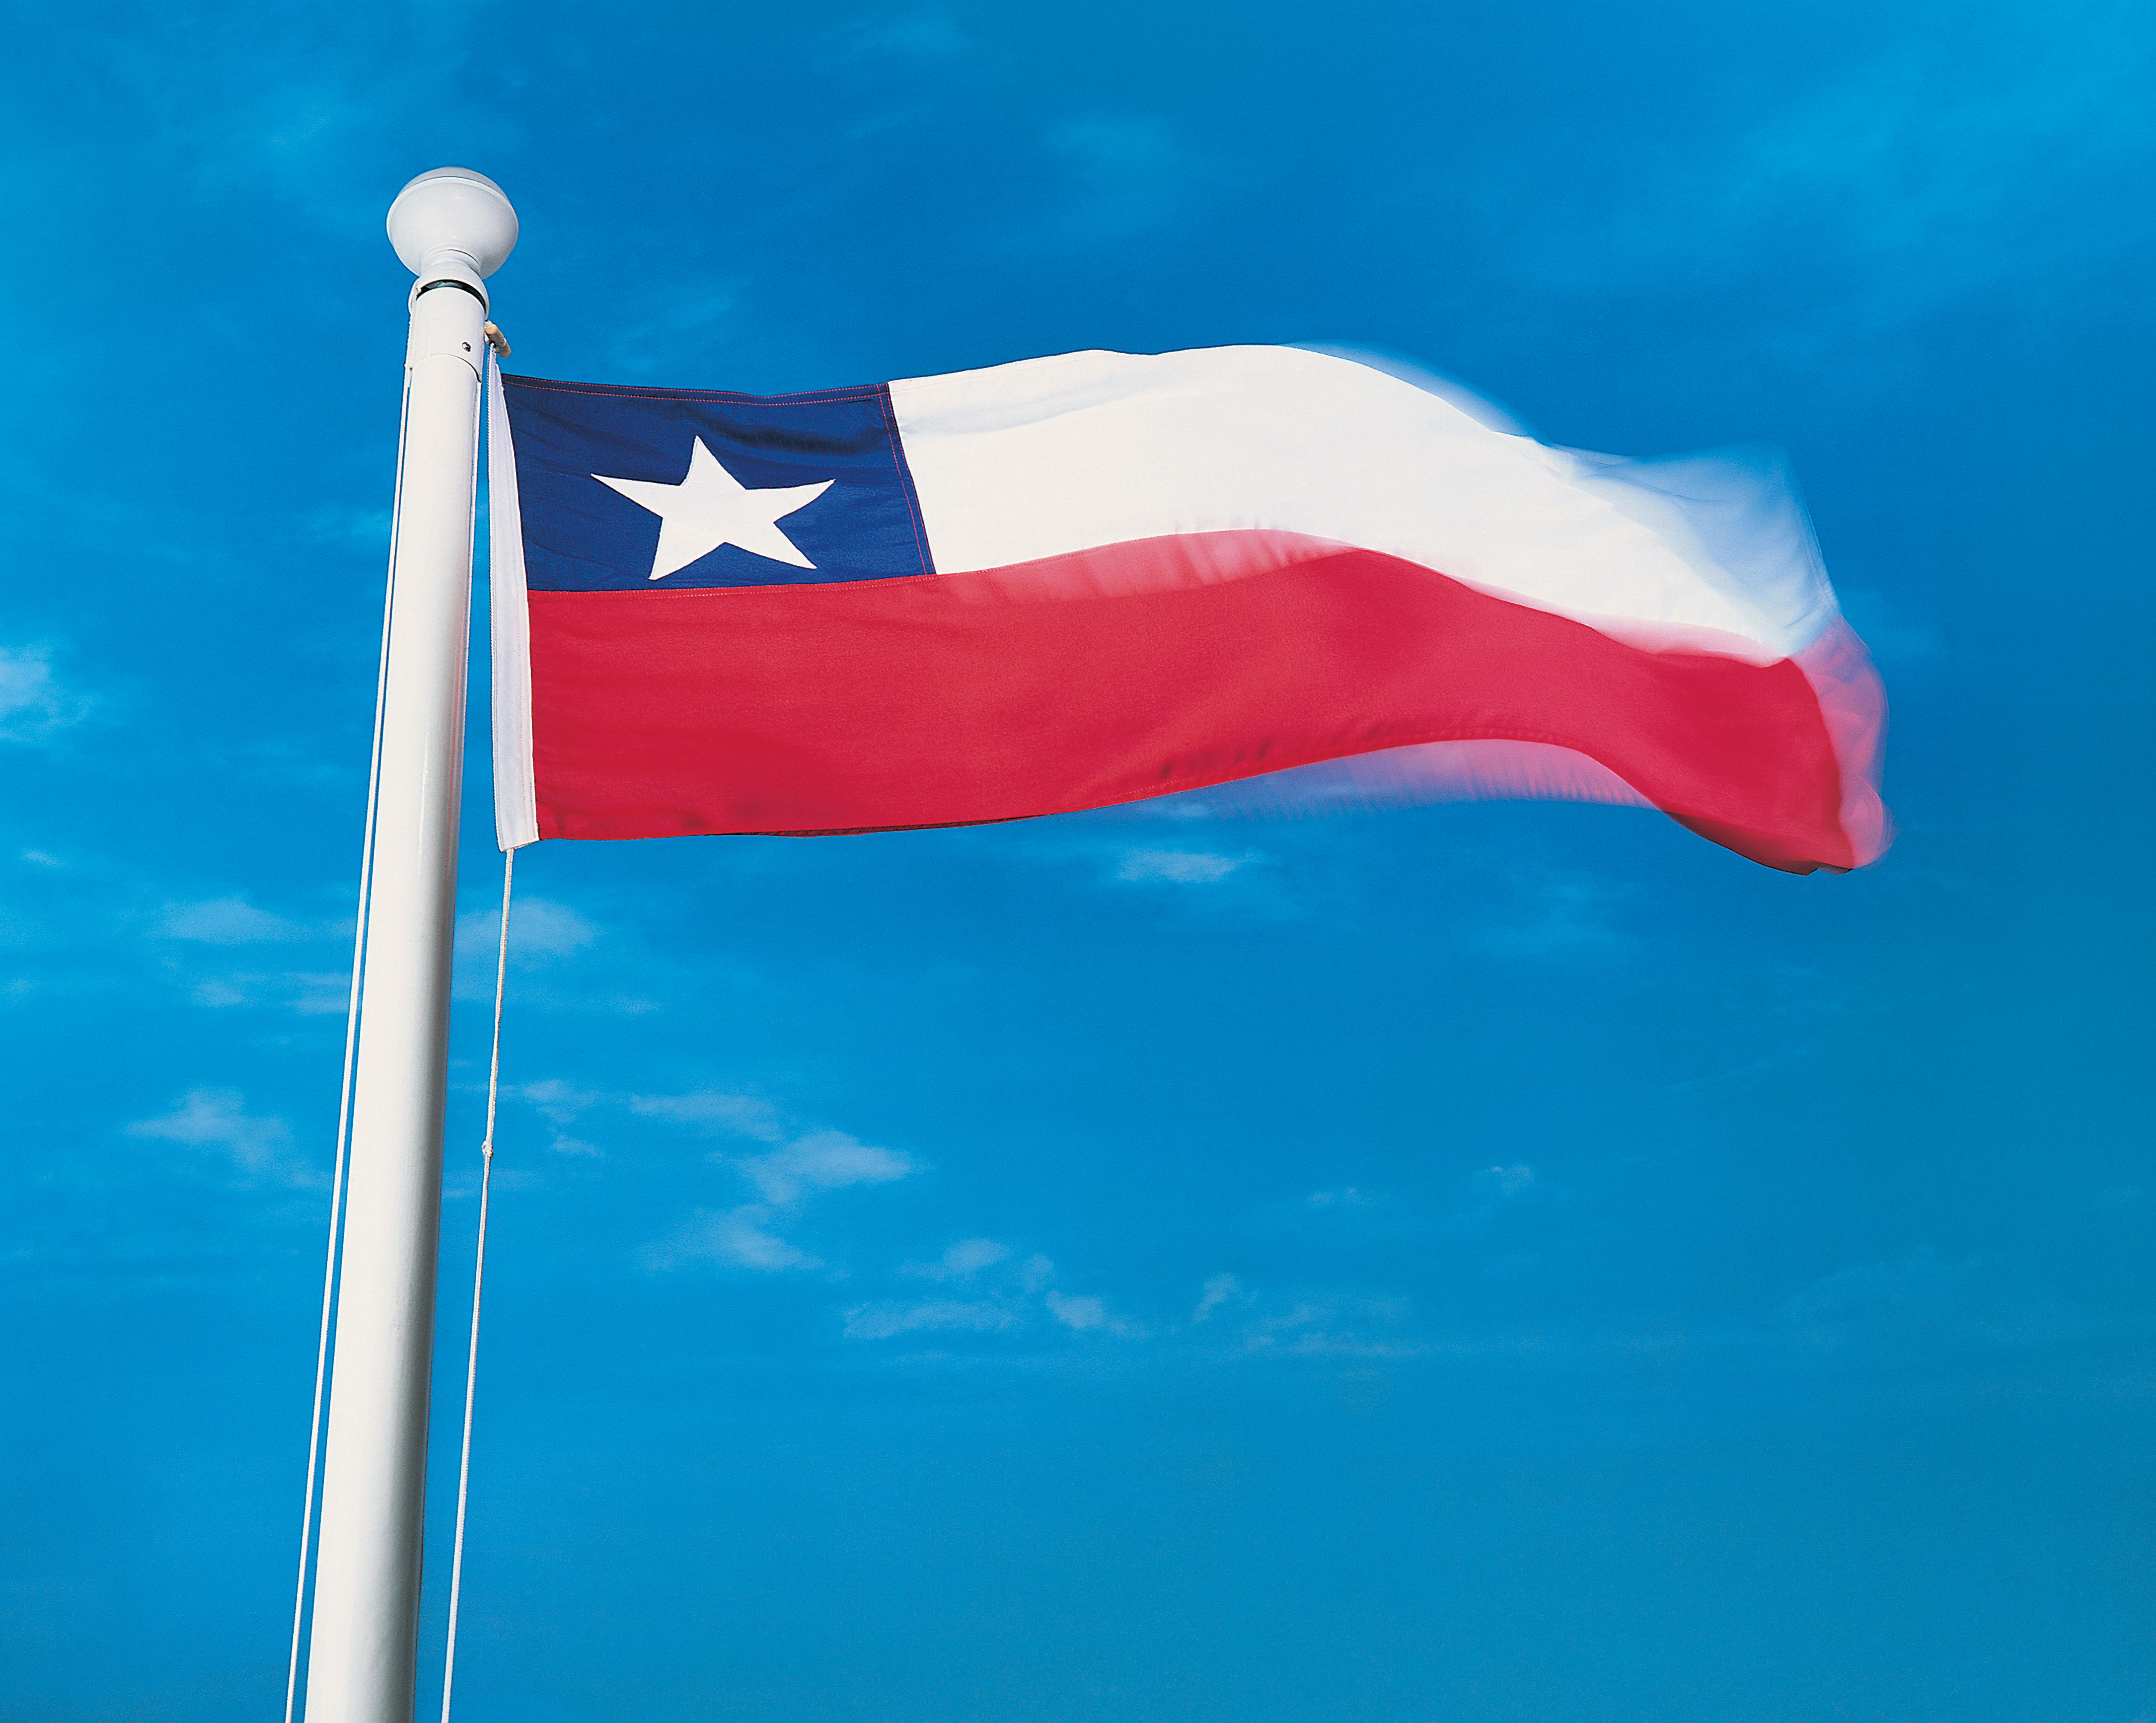 Flag of Chile on flagpole waving in the wind